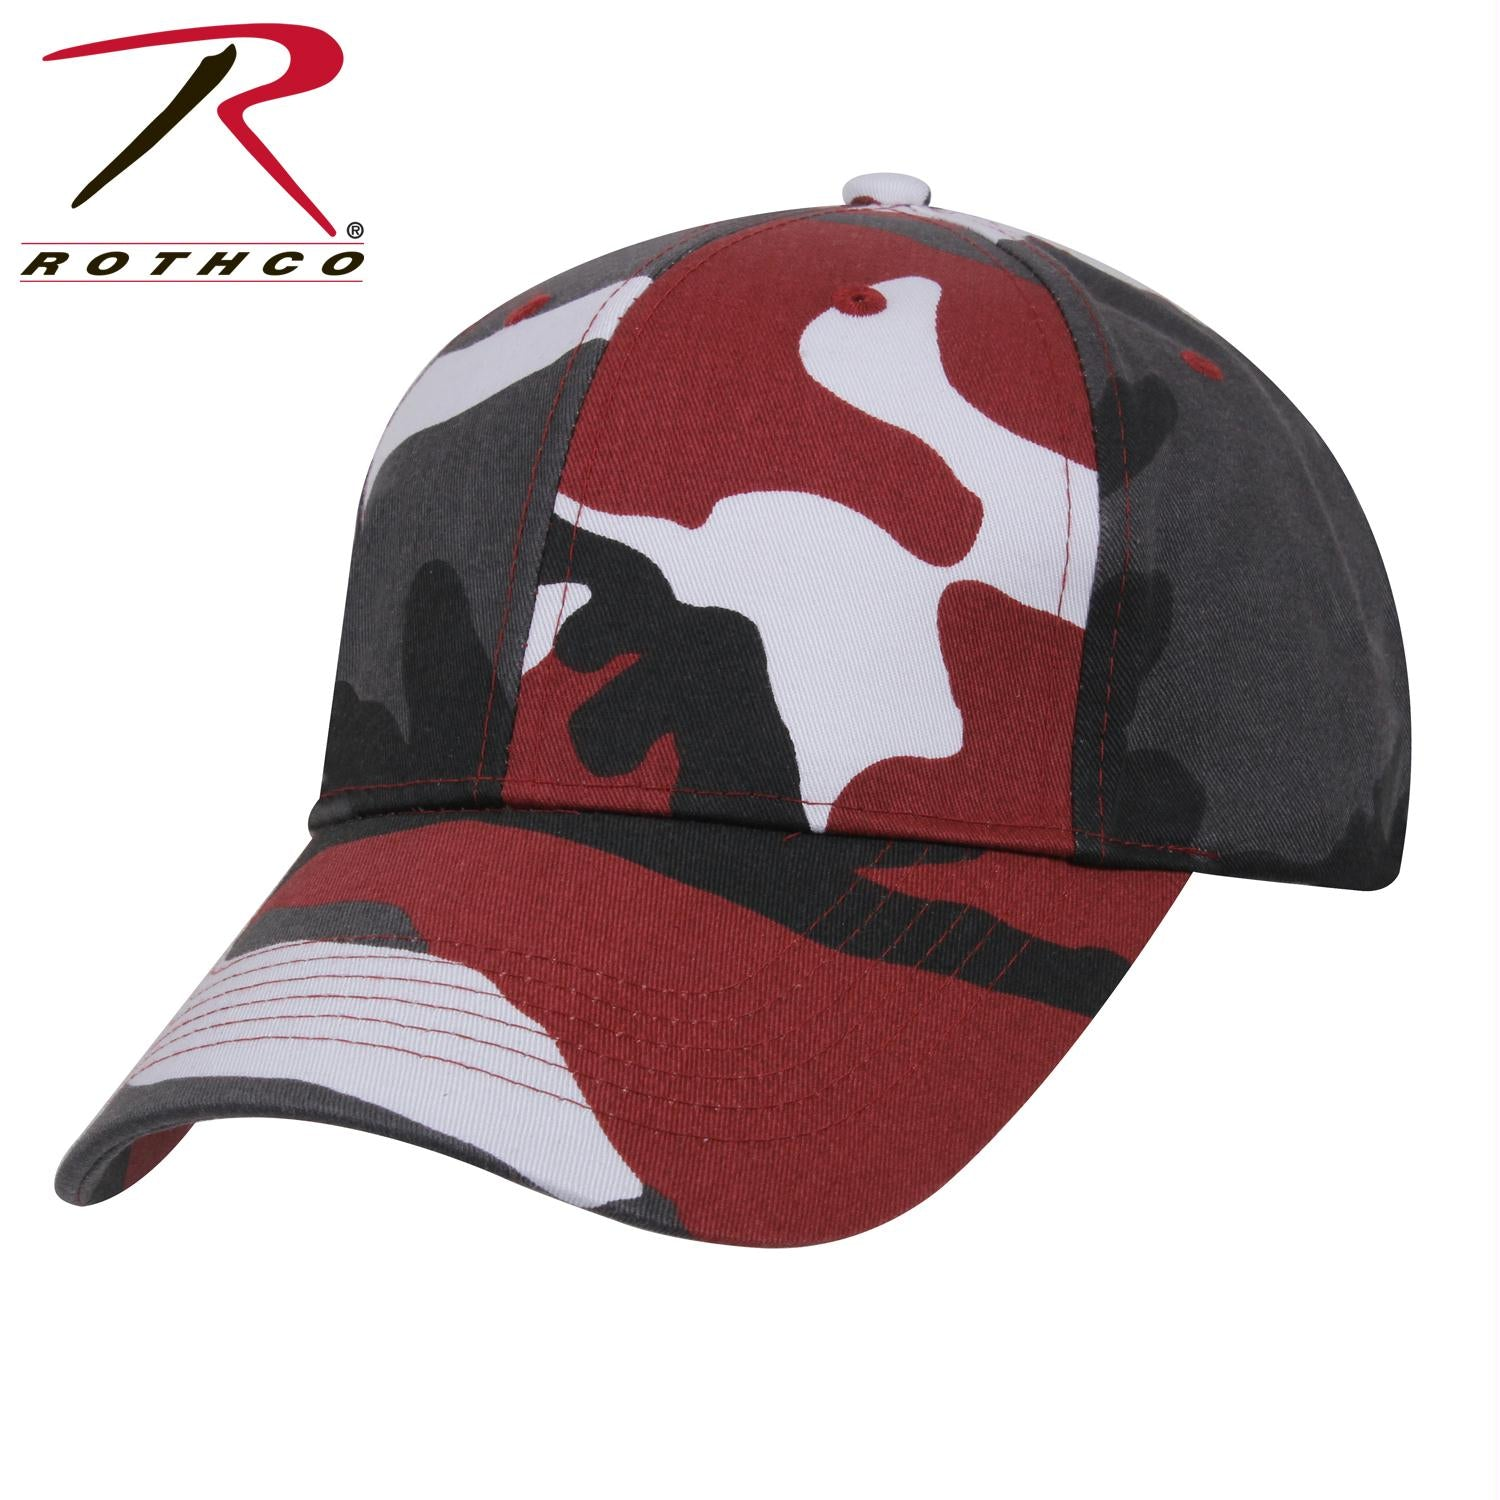 Rothco Supreme Camo Low Profile Cap - Red Camo / One Size